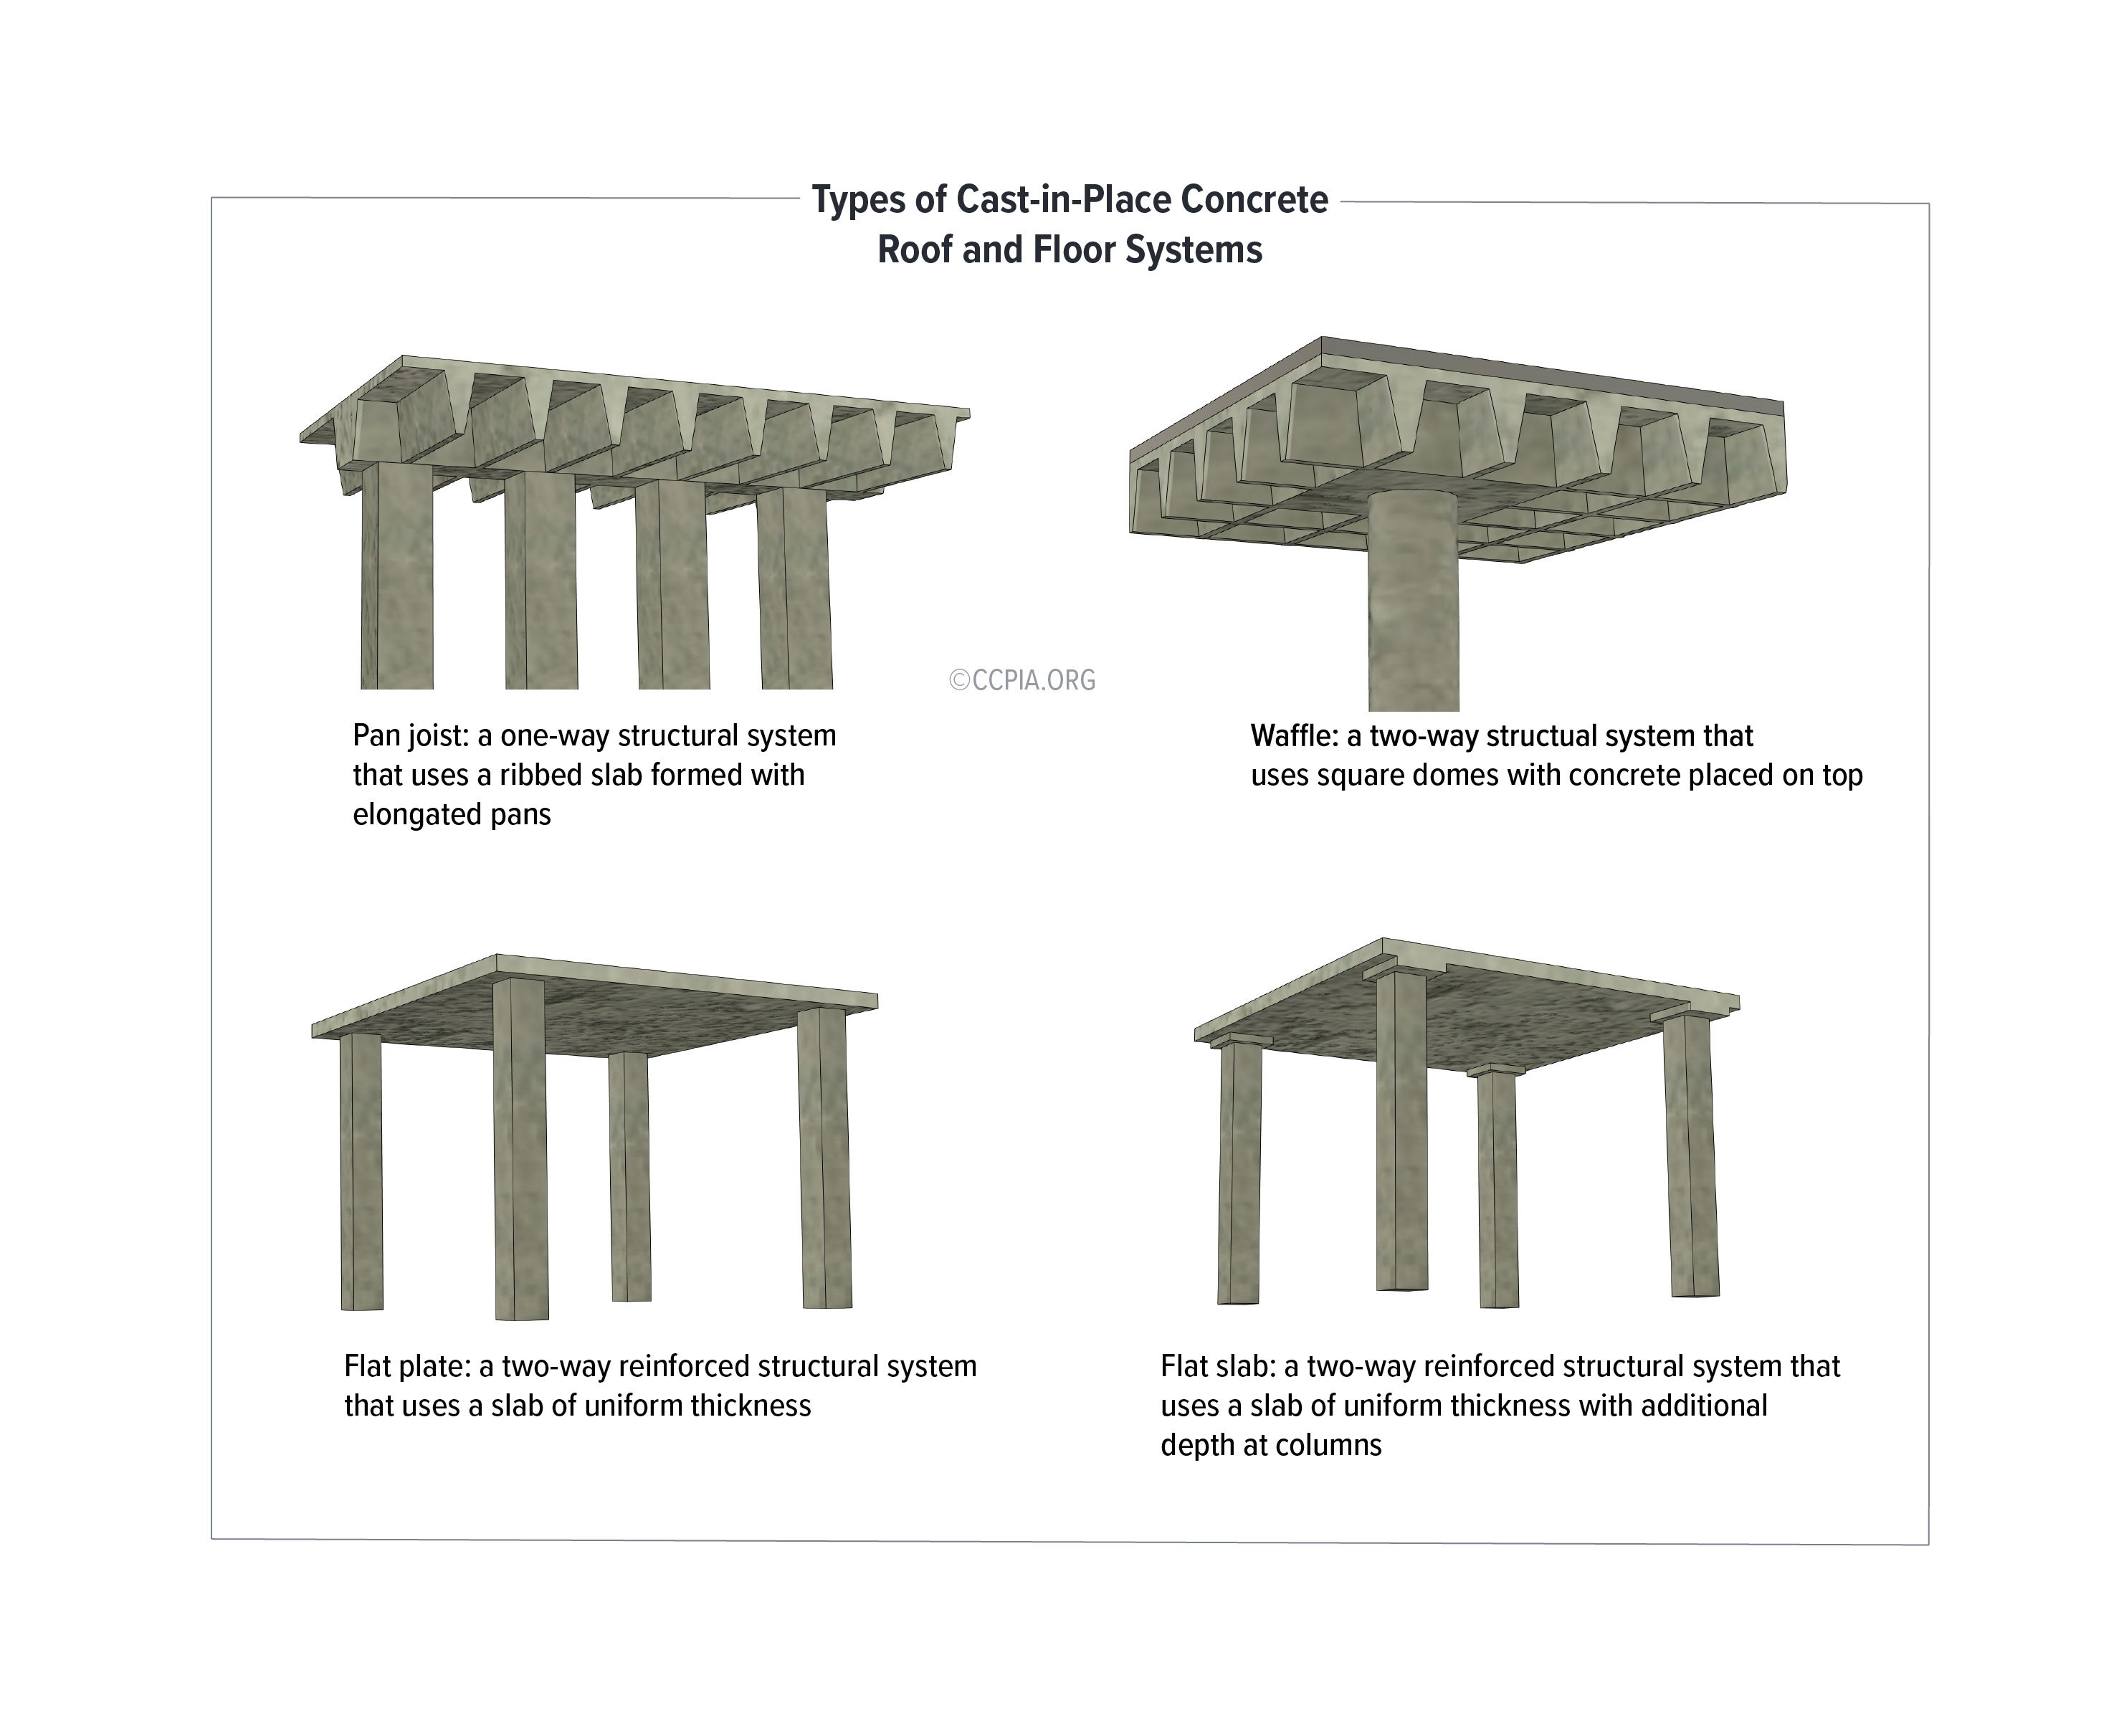 Types of Cast-in-Place Concrete Roof and Floor Systems: Pan Joist, Waffle, Flat Plate, Flat Slab